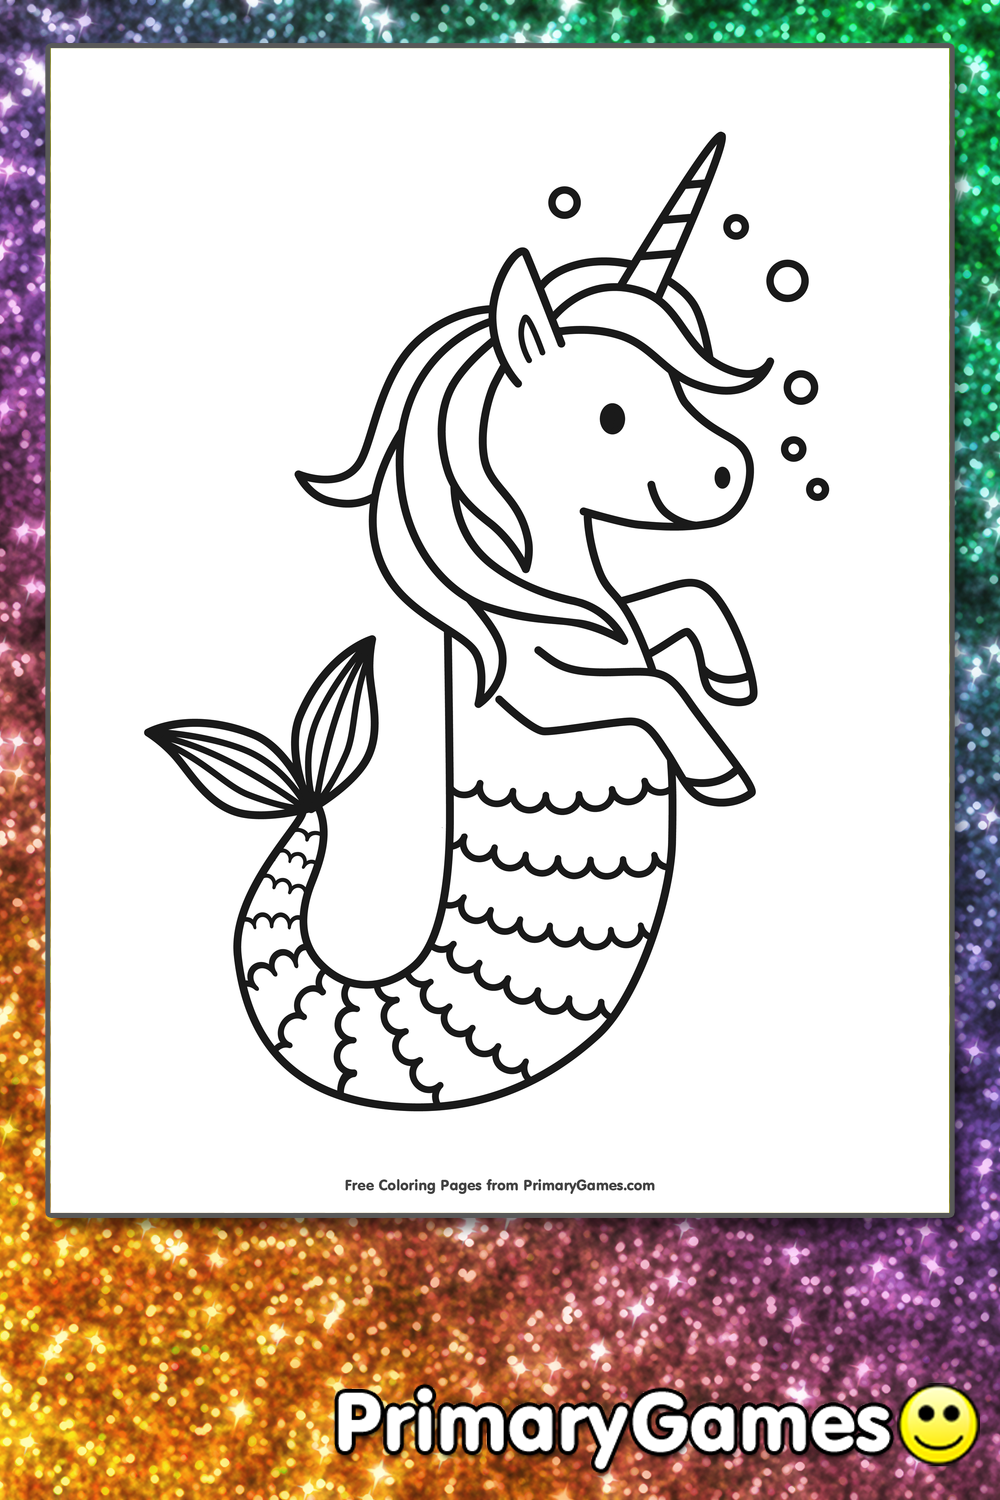 Unicorn Seahorse Coloring Page • FREE Printable PDF from PrimaryGames